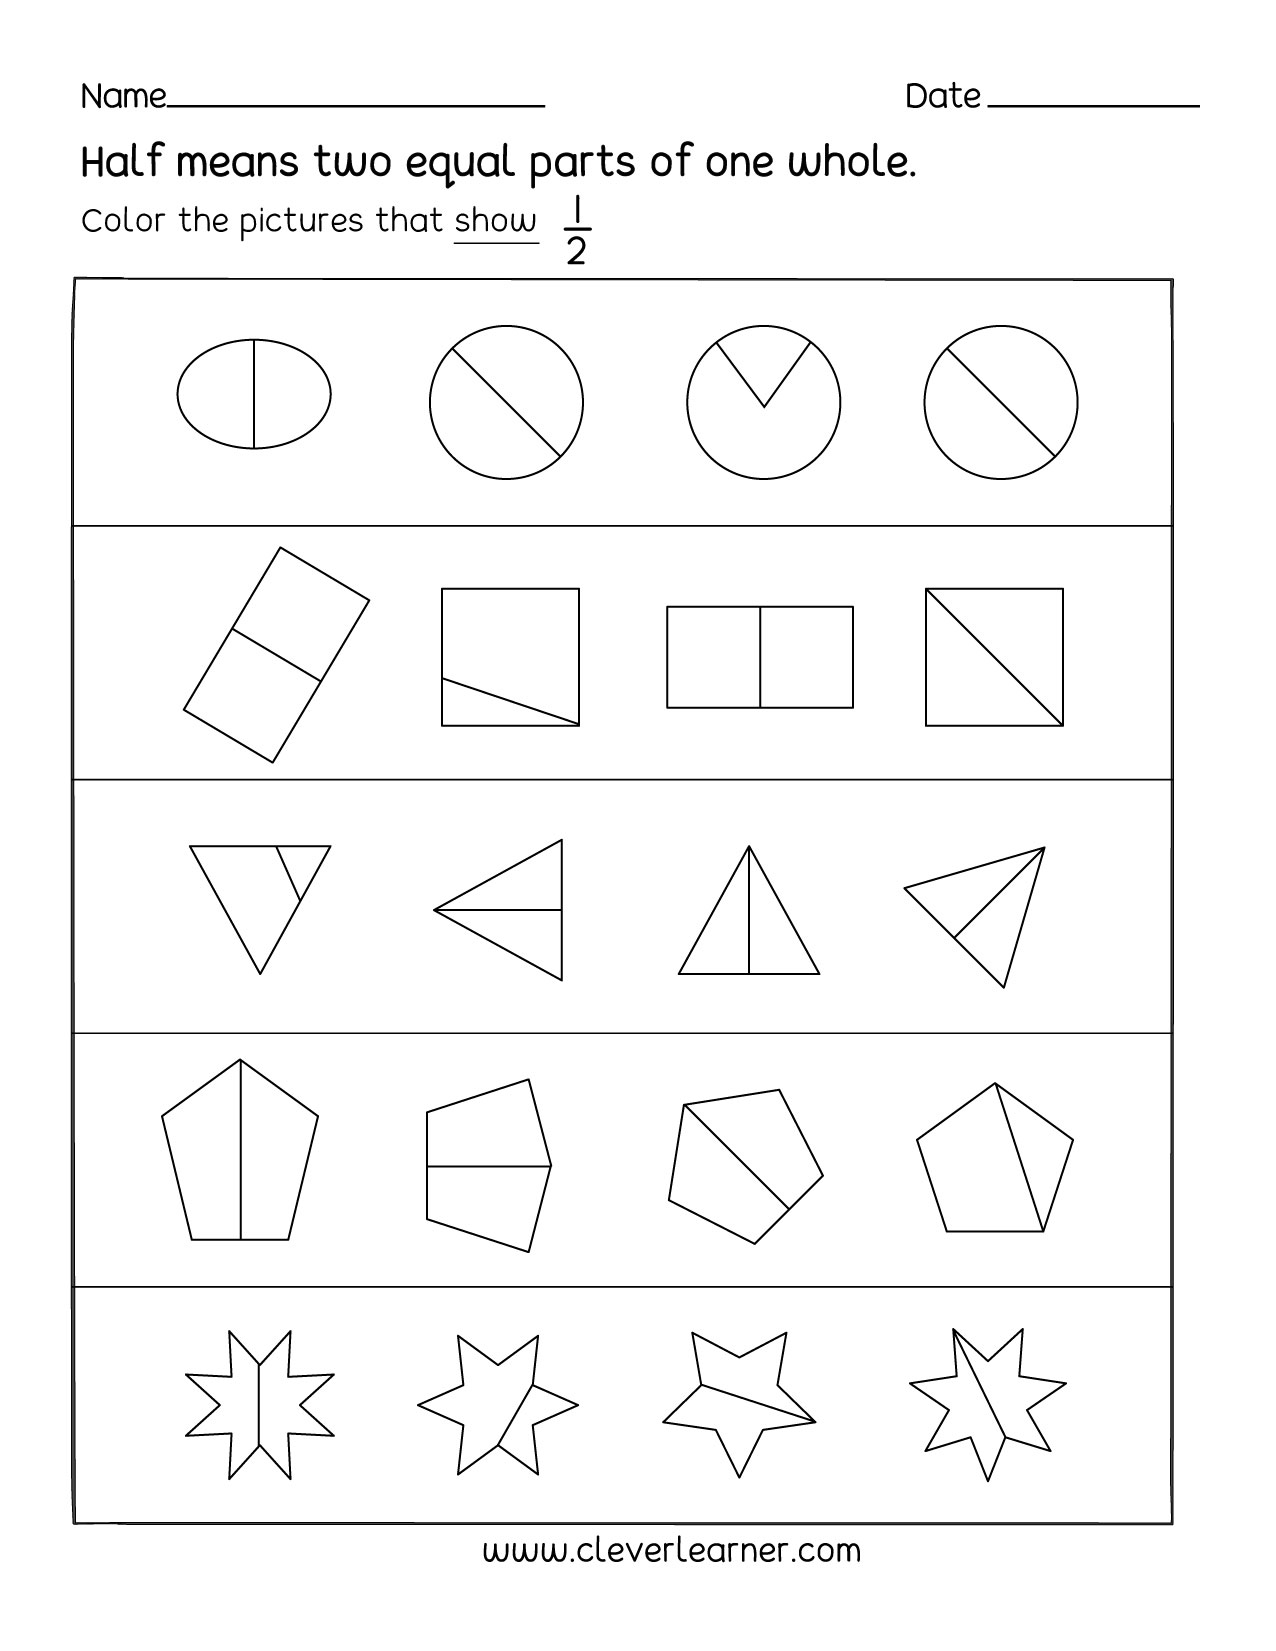 Fun Activity On Fractions Half 1 2 Worksheets For Children